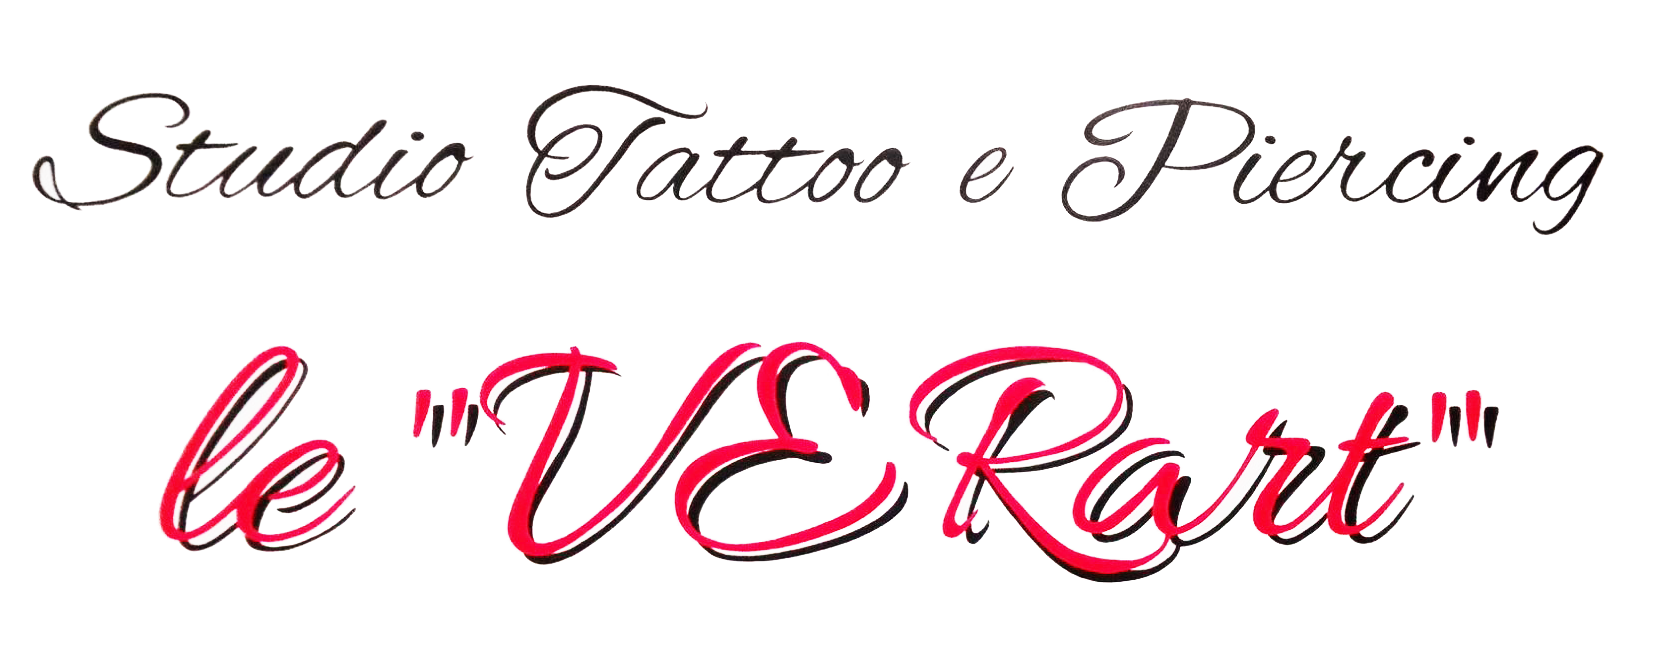 tattoo le verart